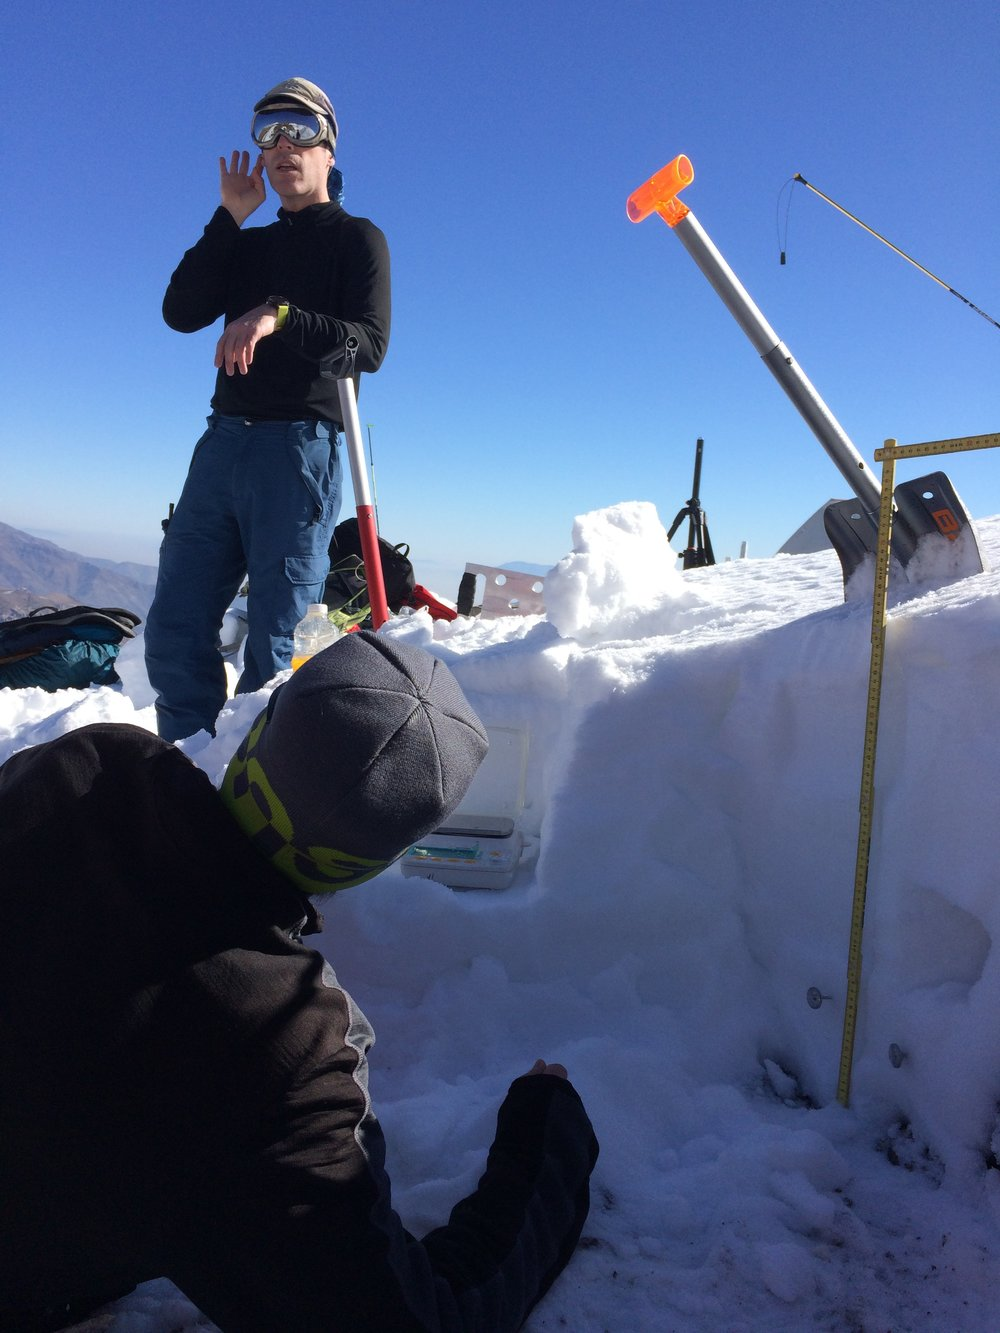 The snowpit shows the sorry state of the snowpack